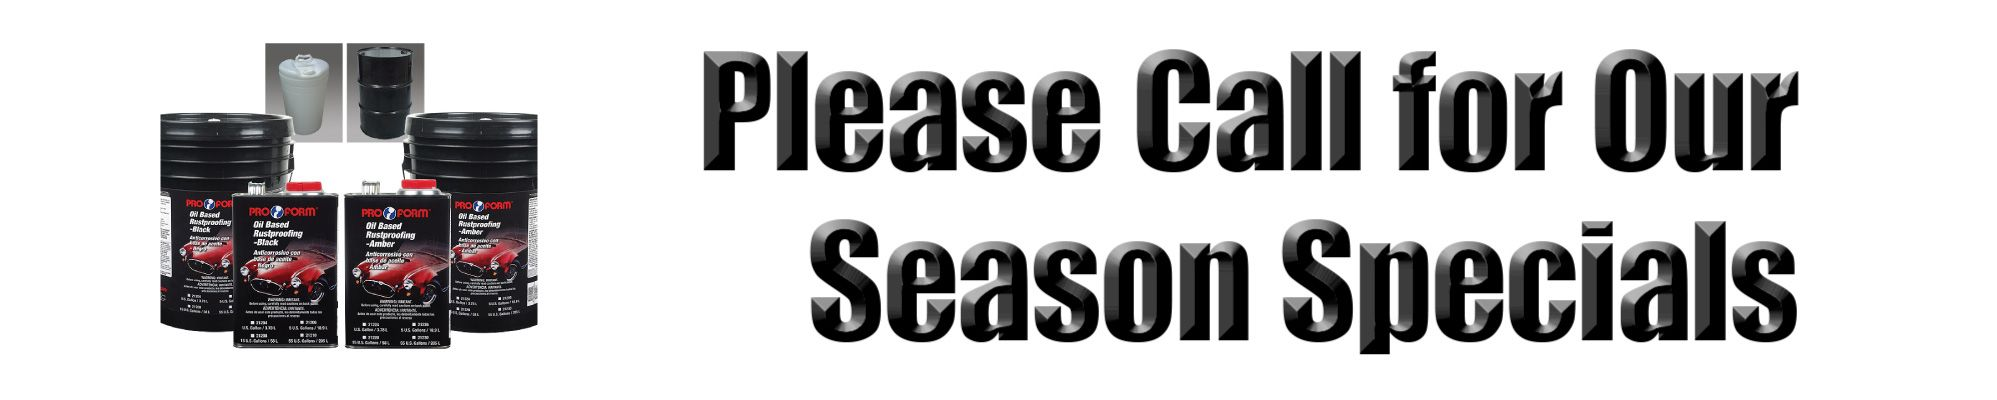 Please Call for Our Season Specials